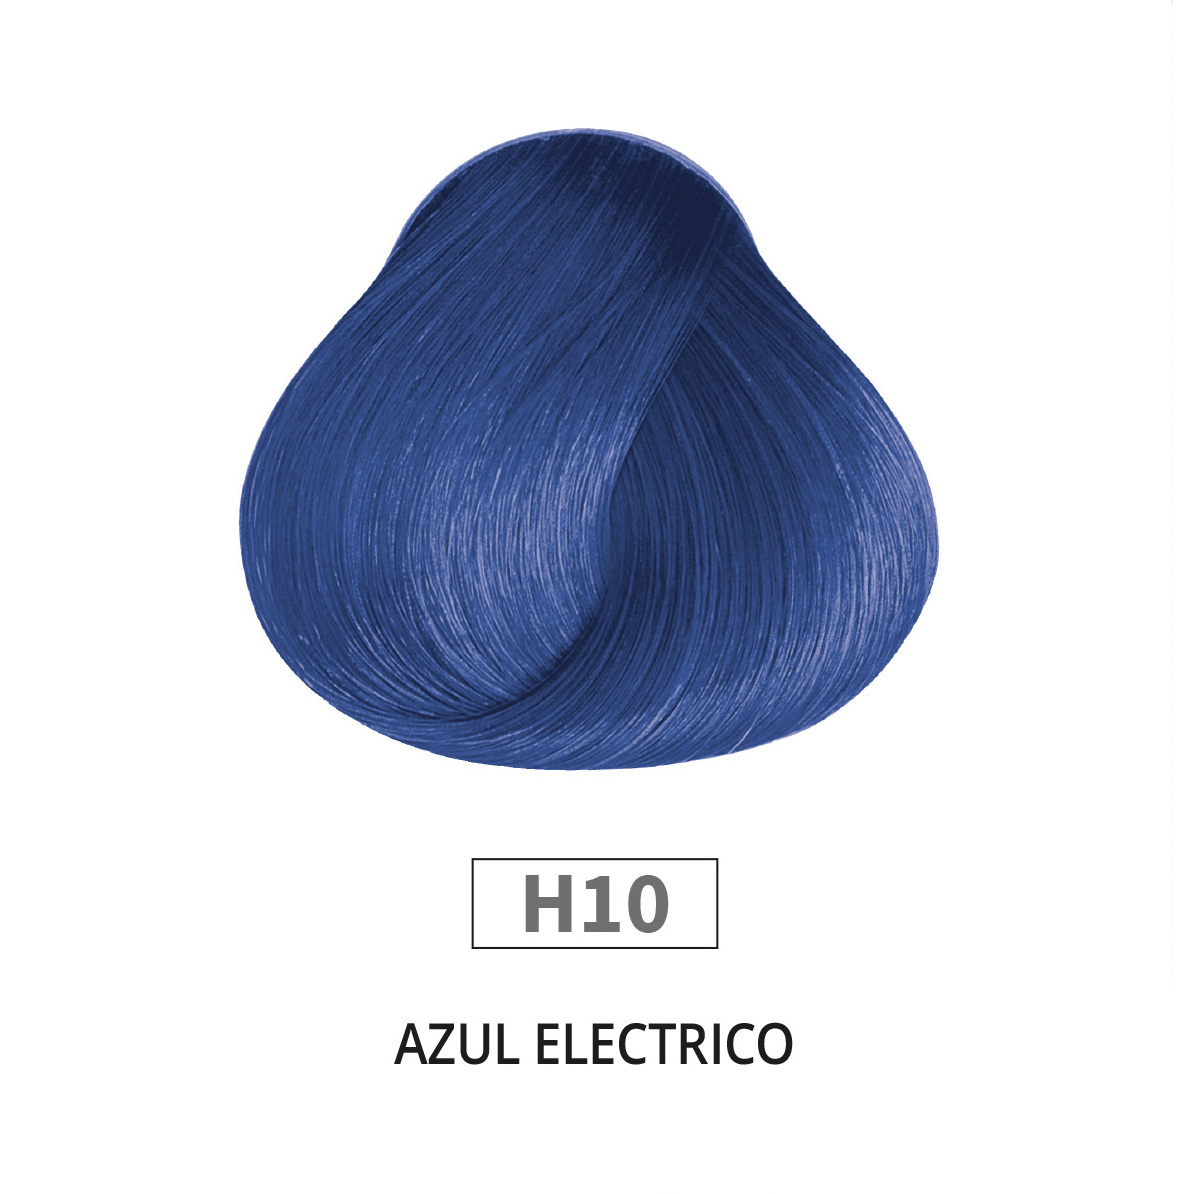 Azul Electrico H10 - Yanguas Professional